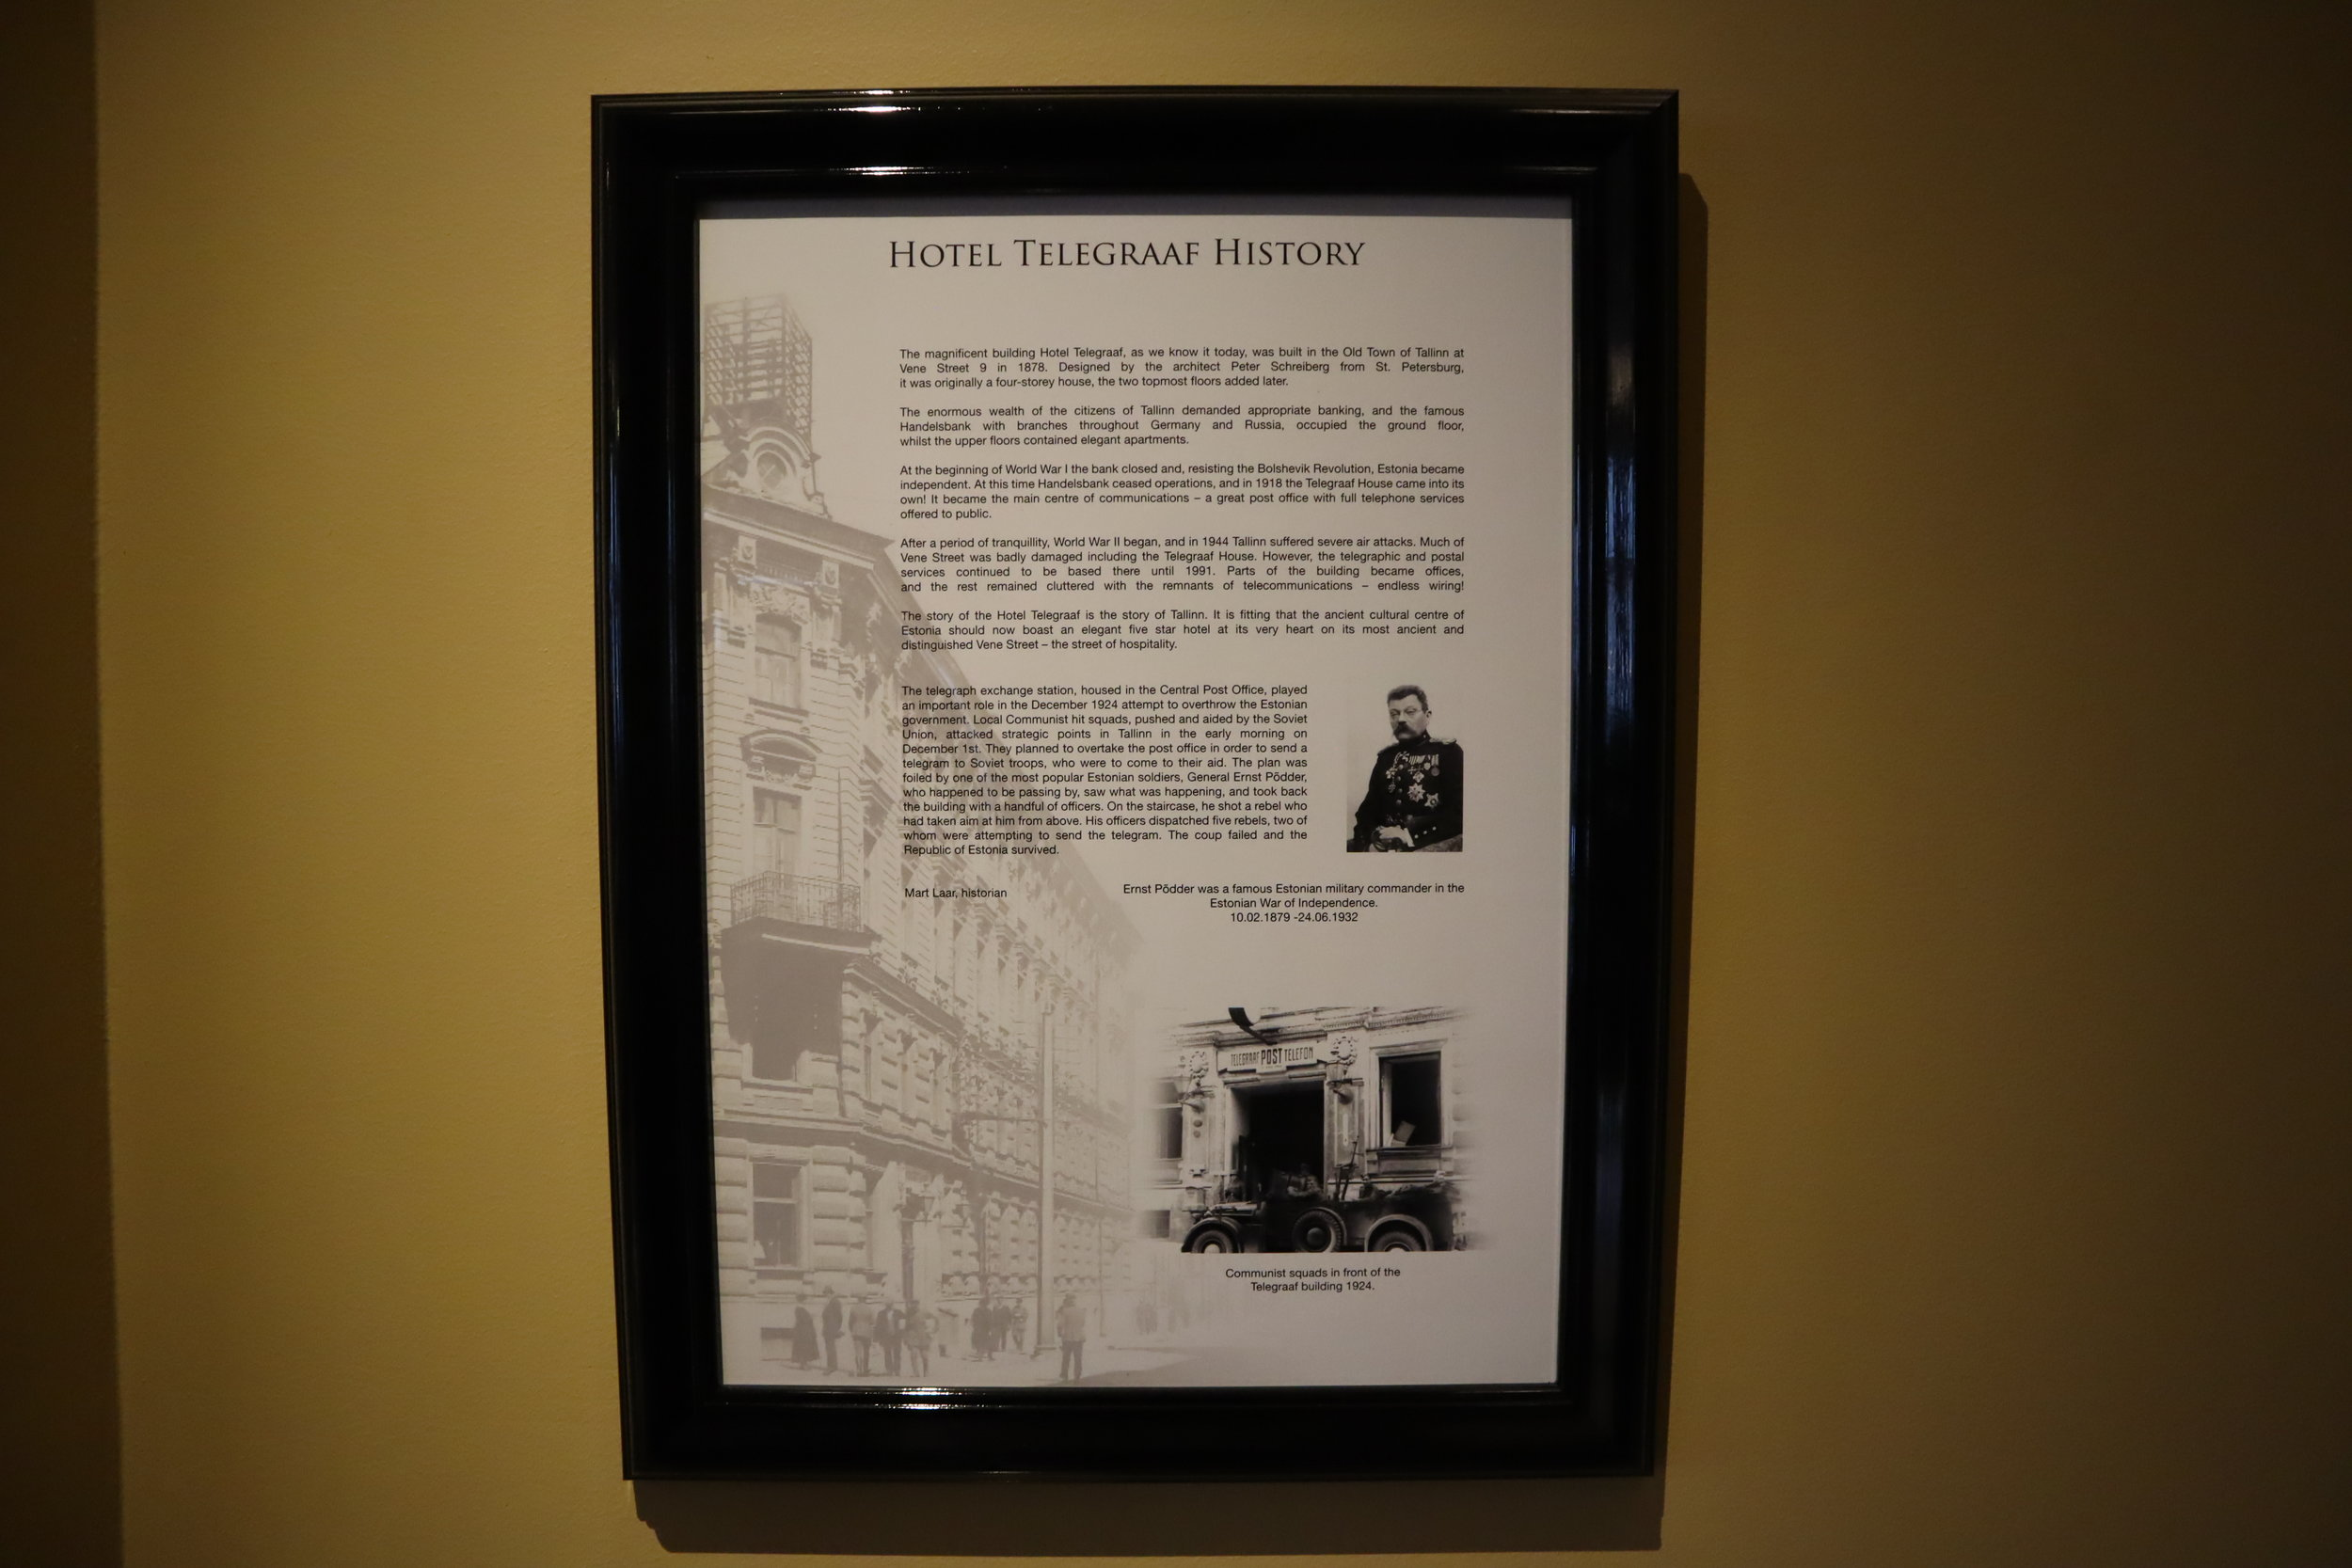 Hotel Telegraaf Tallinn – History of the hotel